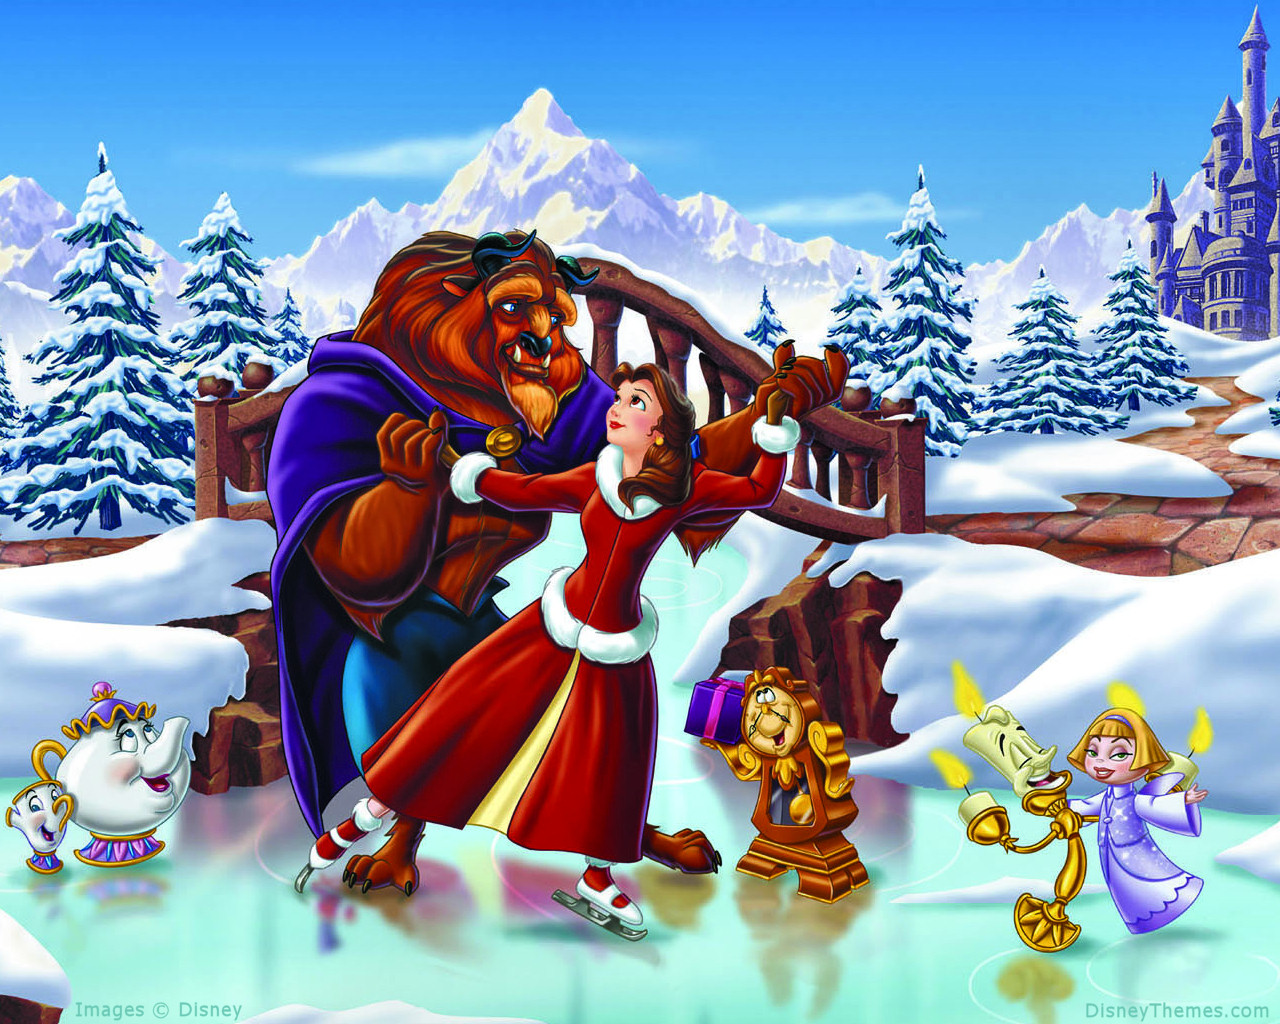 Disney Christmas WallpaperTHR999HKRG 1 1280x1024